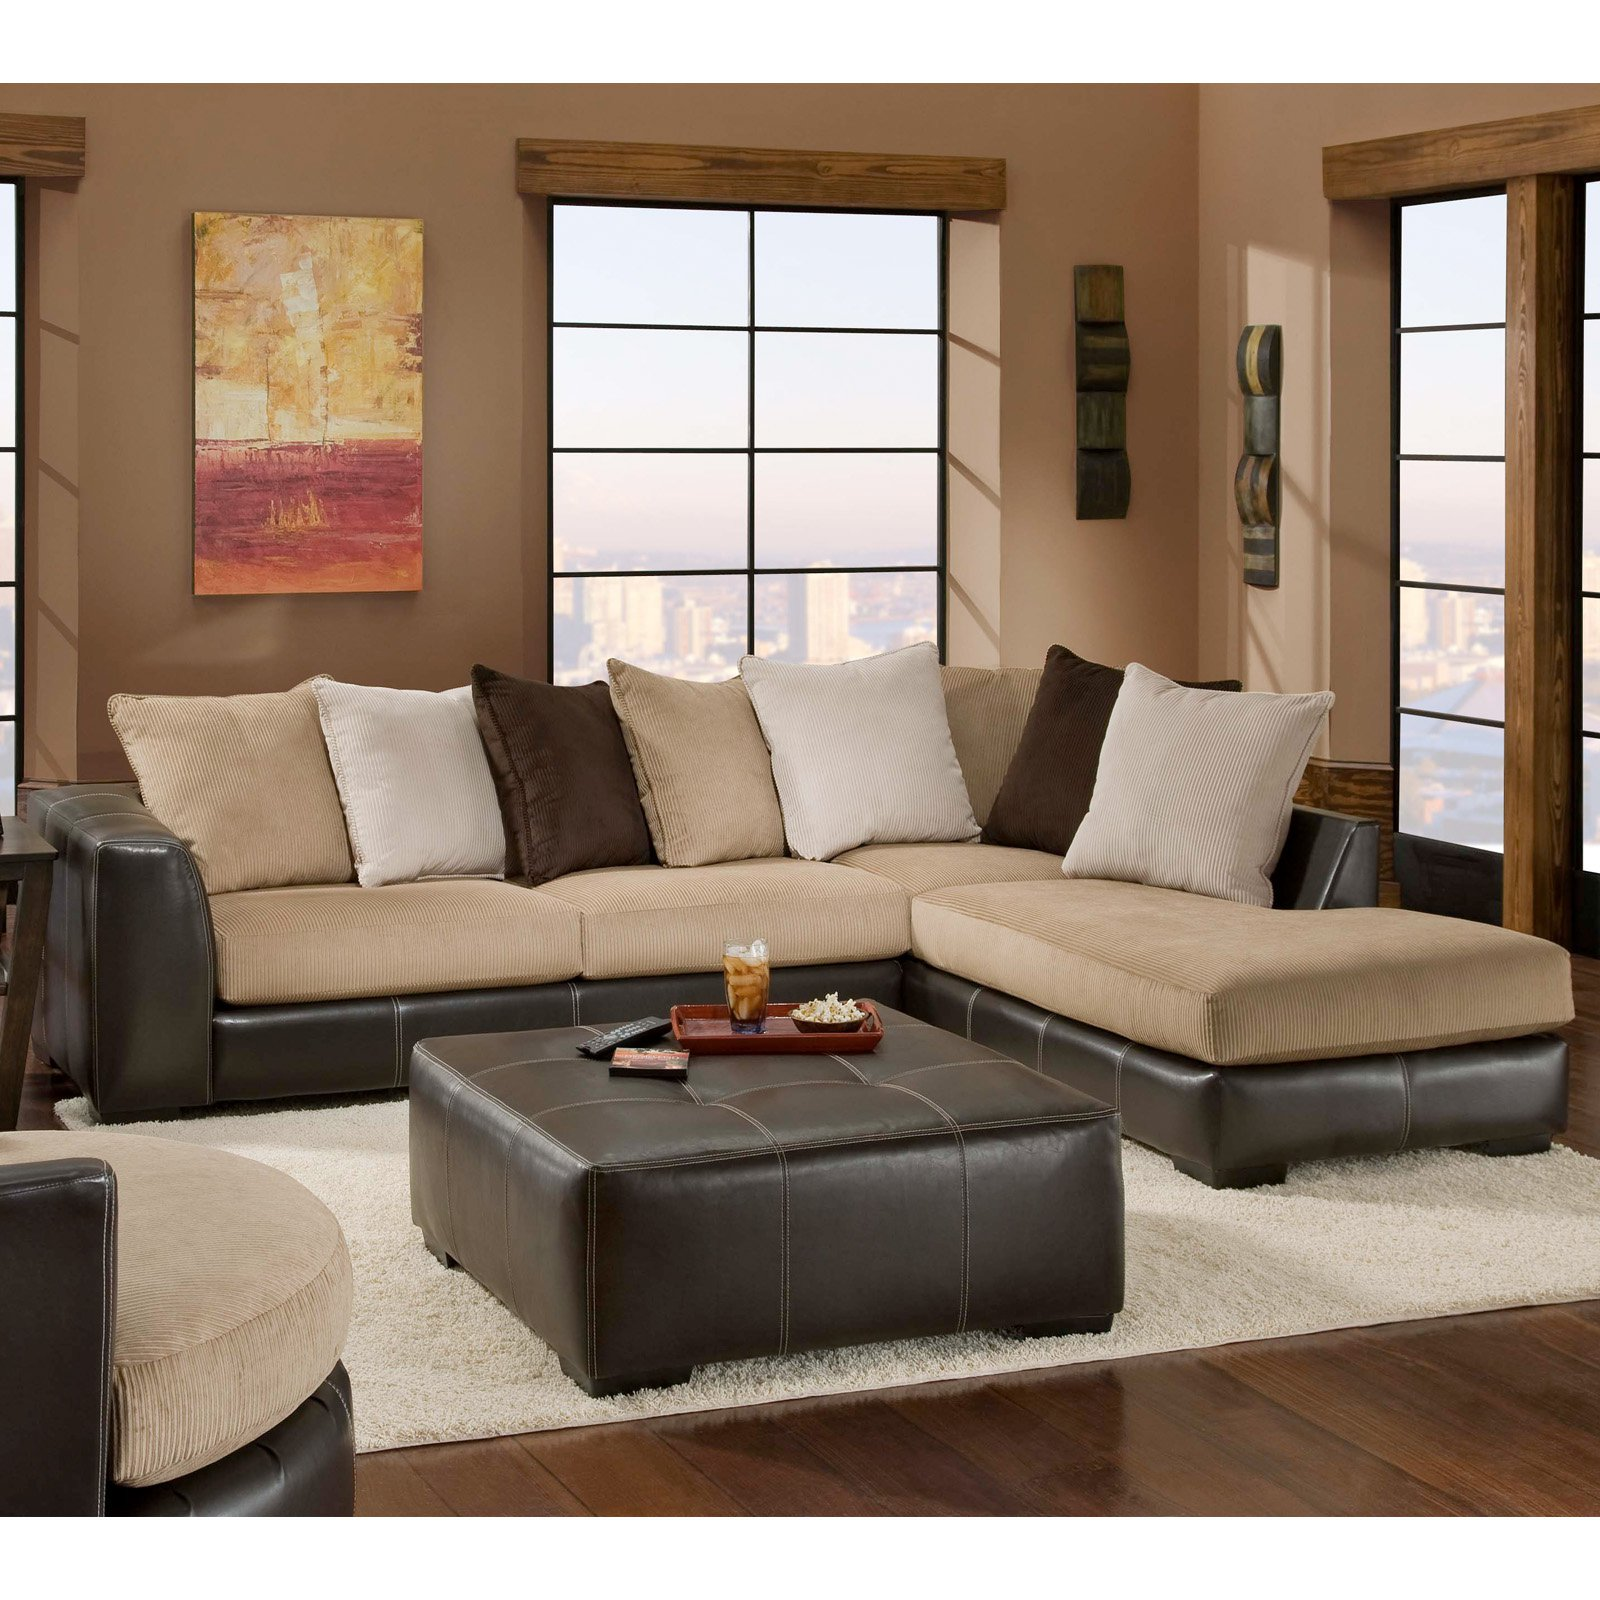 Delightful Chelsea Home Amherst 2 Piece Sectional Sofa